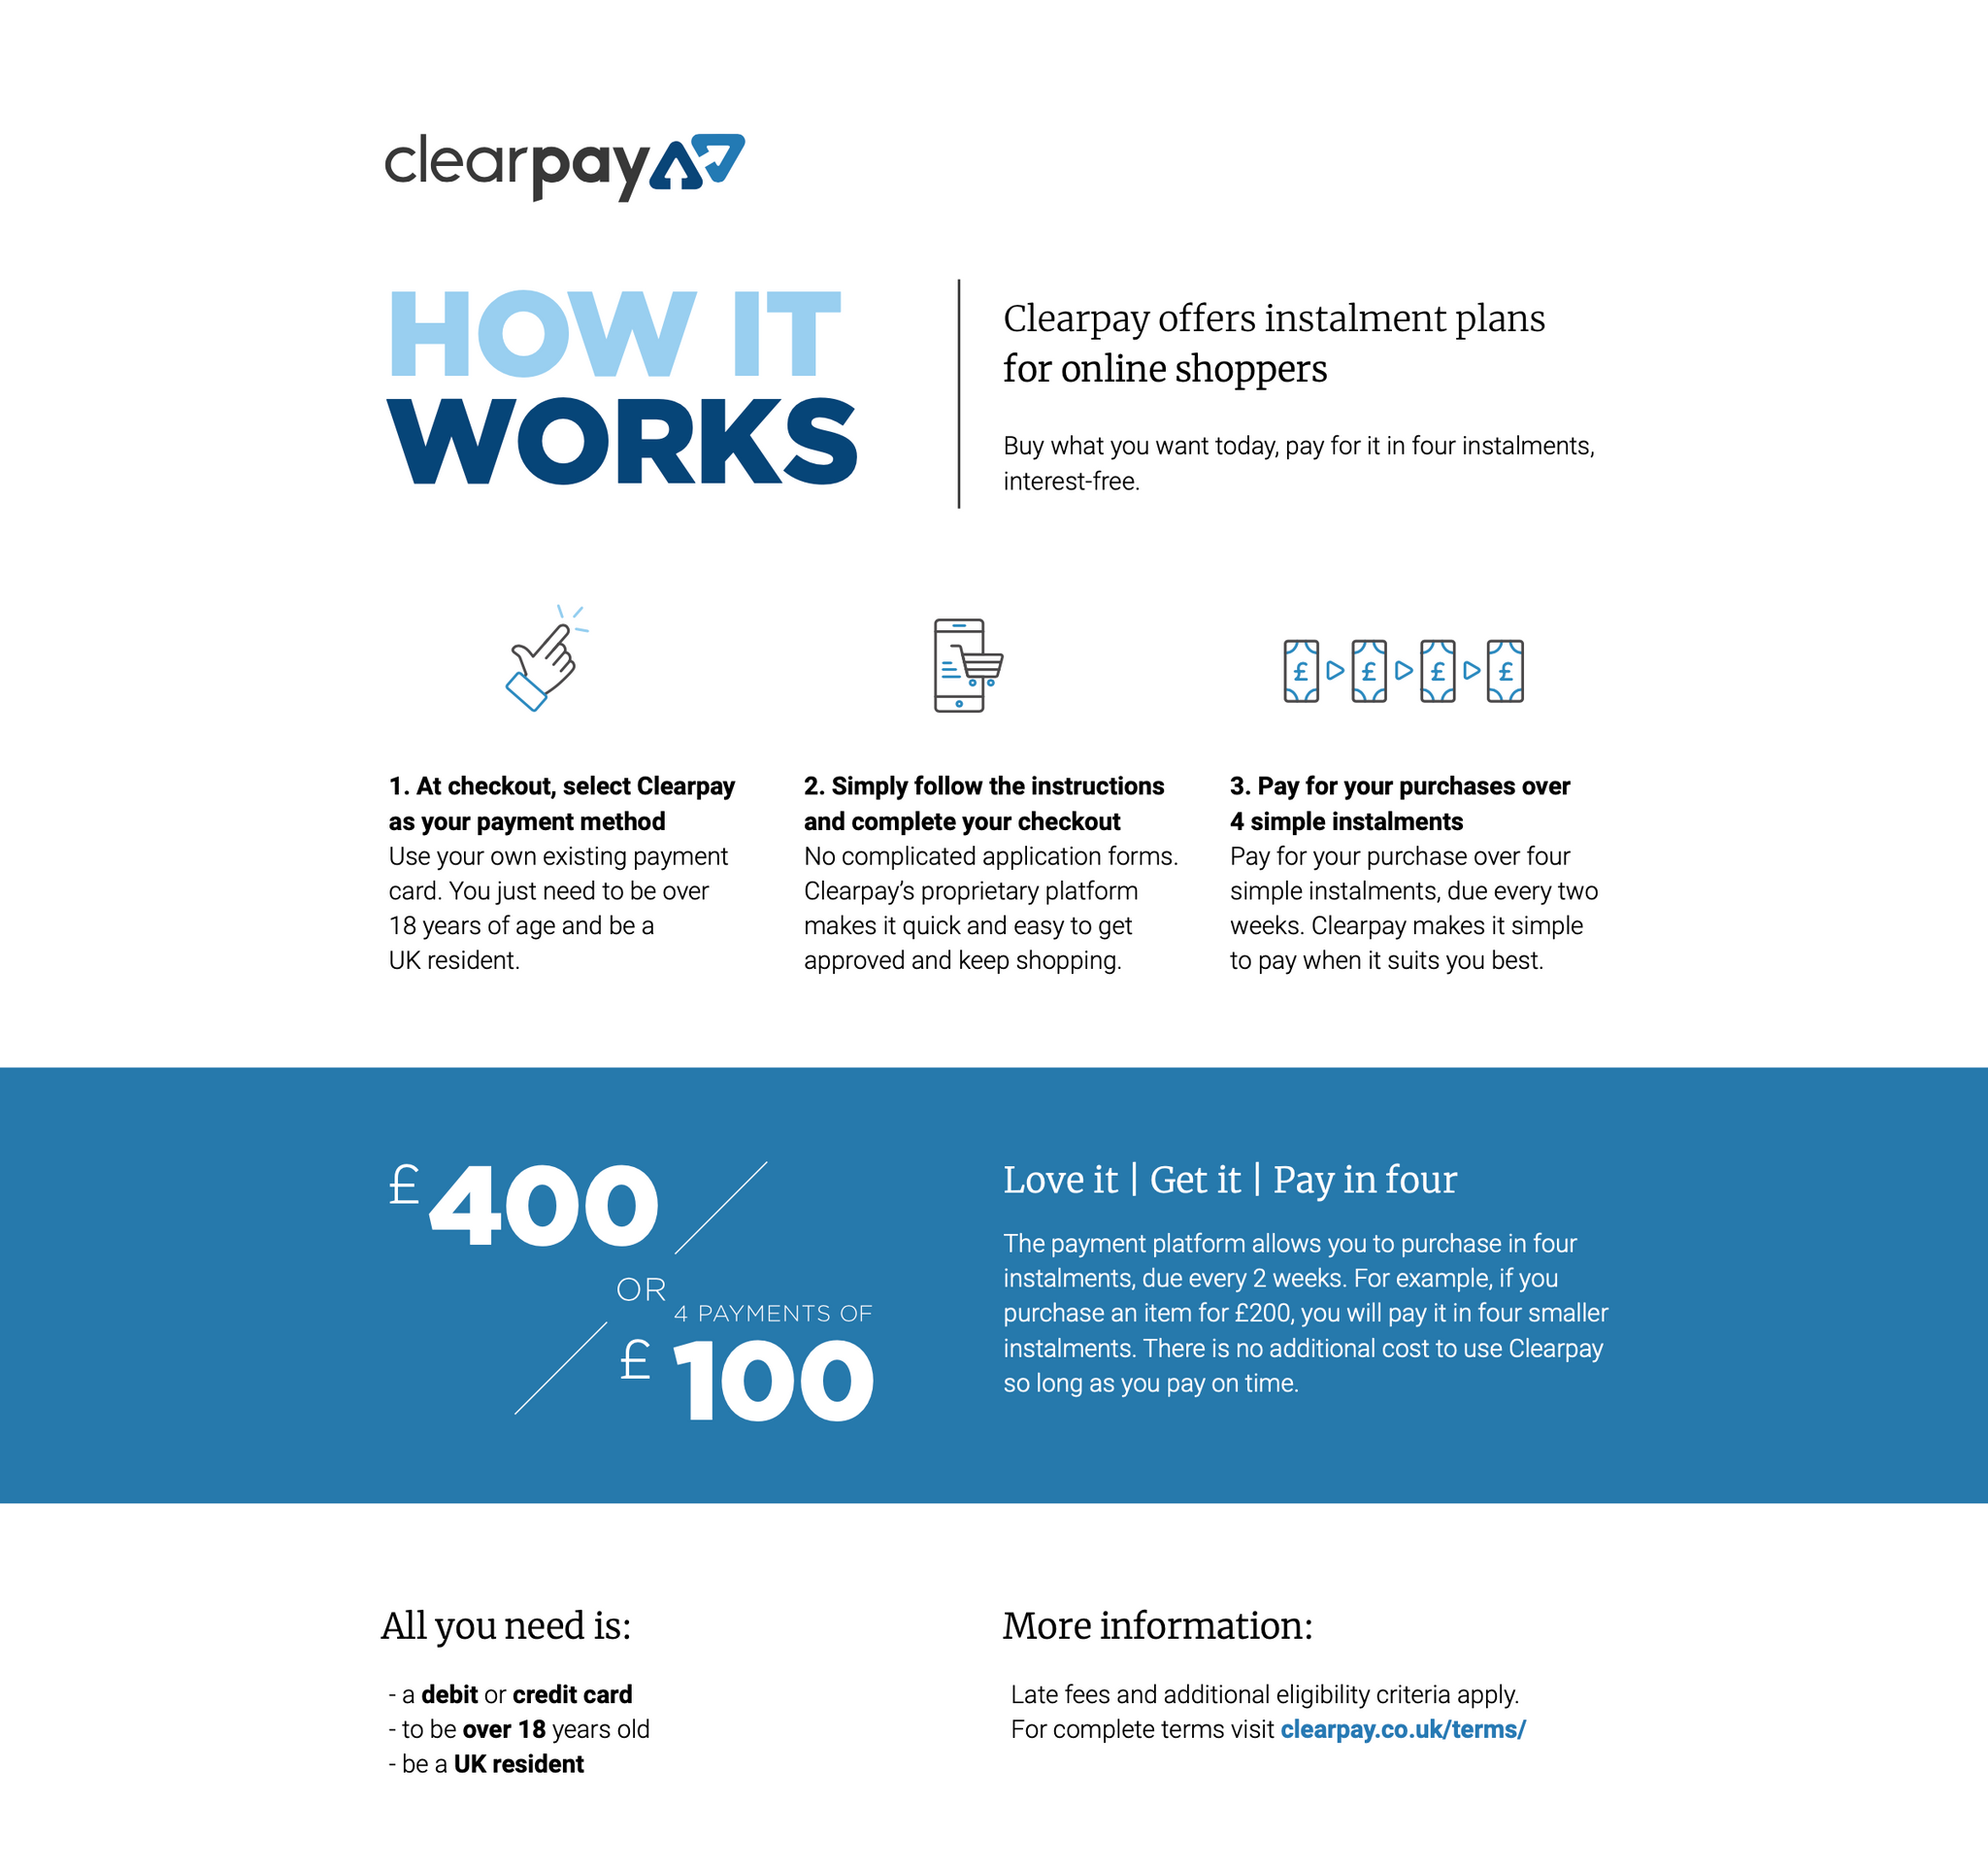 CLEARPAY - How it works